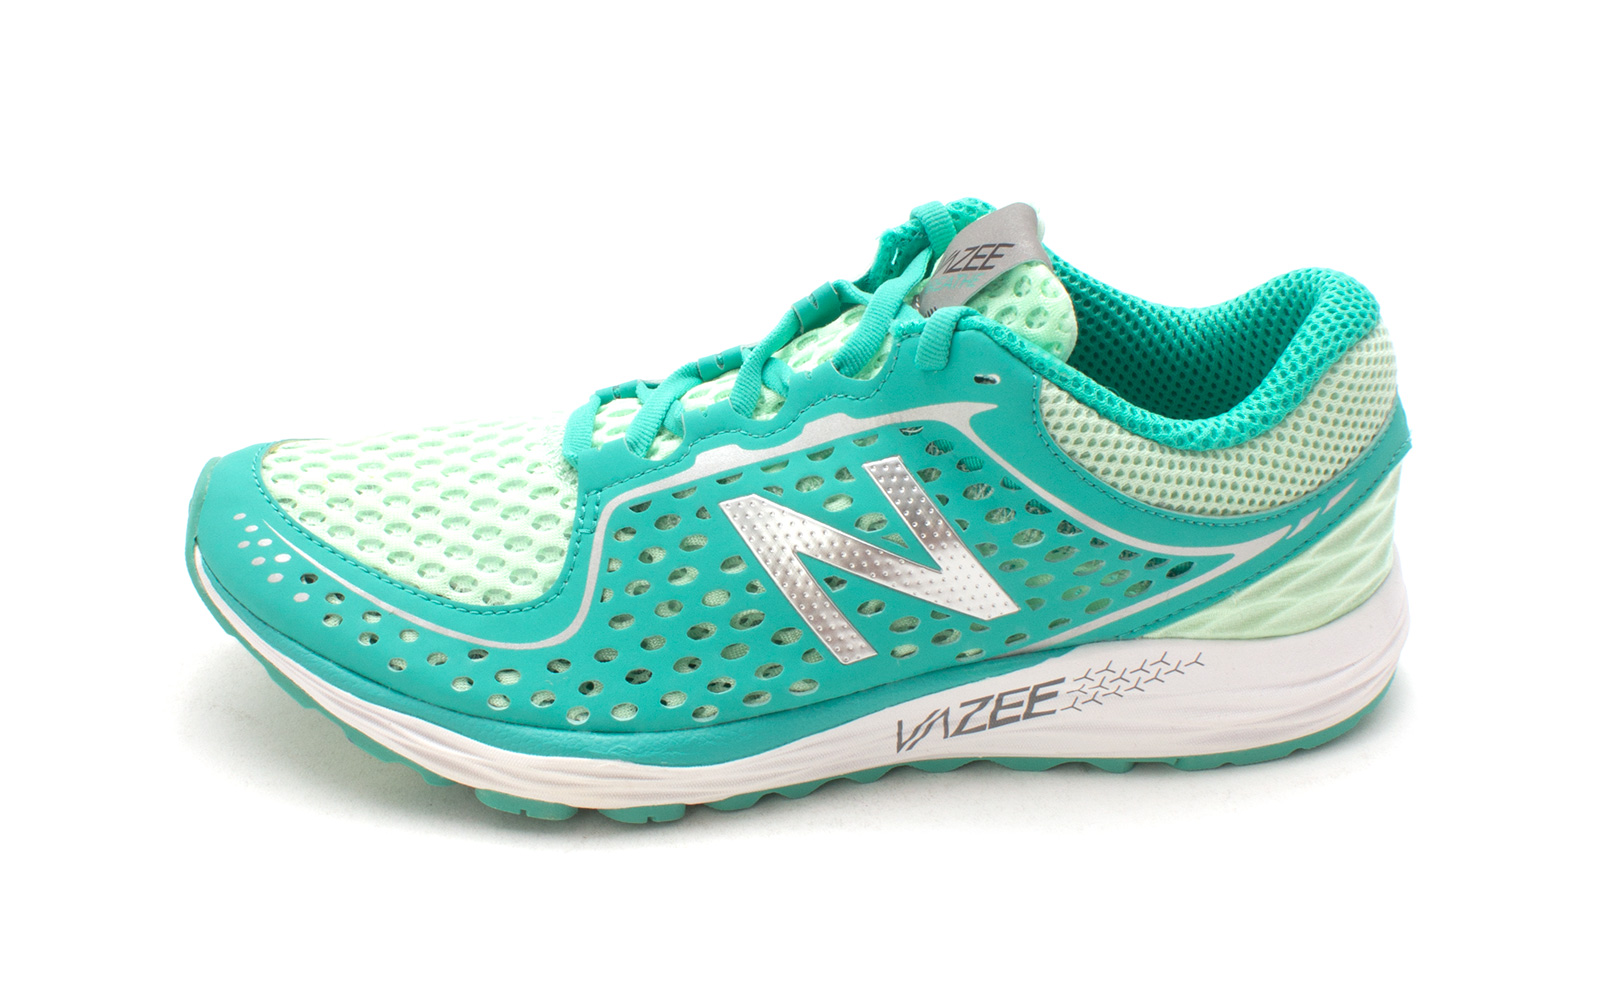 New Balance Womens wbreahs Low Top Lace Up Running Sneaker Green Size 10.0